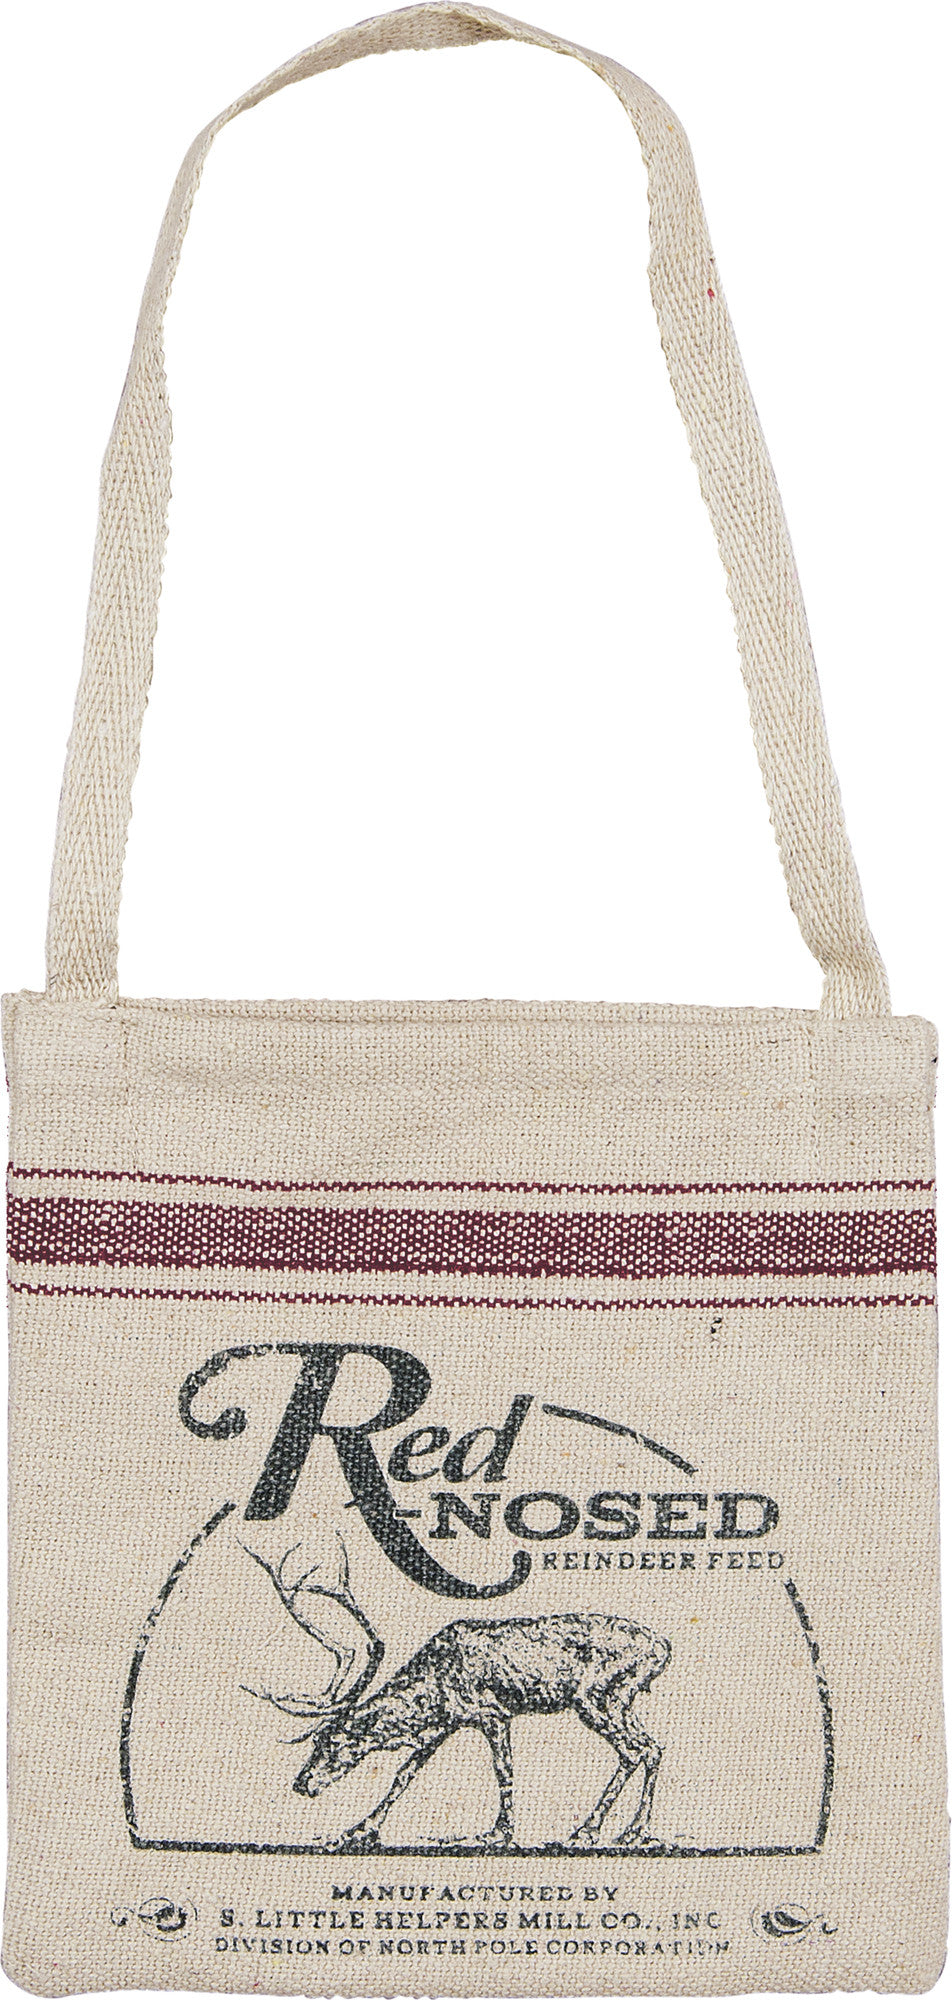 Red Nosed Reindeer Feed Bag